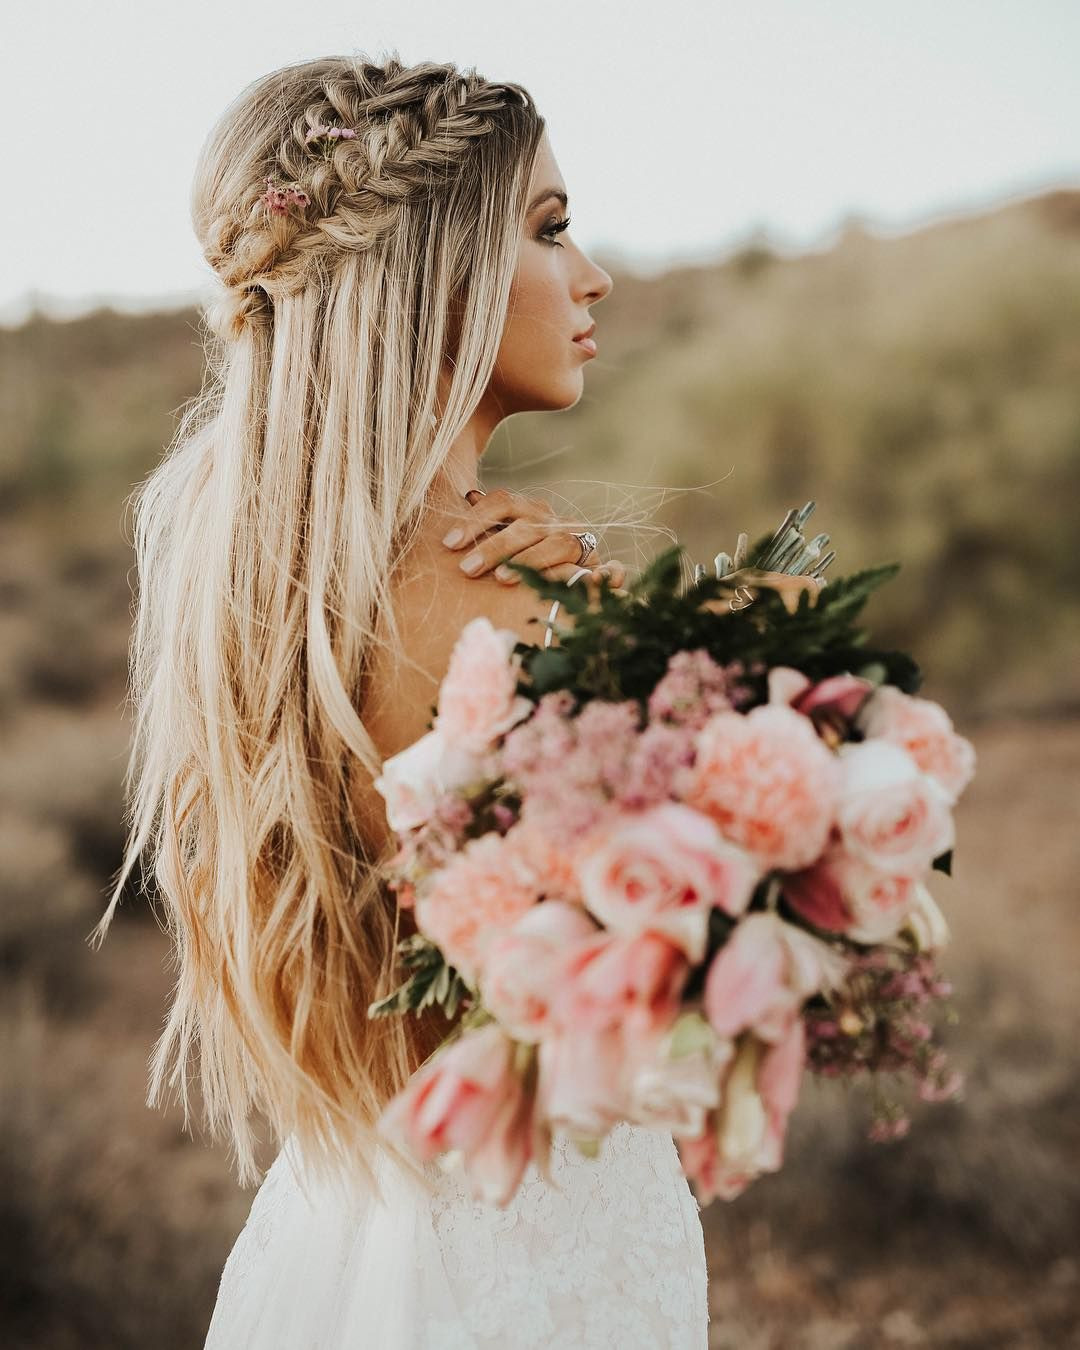 Wedding Hairstyle With Braids: Long Hairstyle